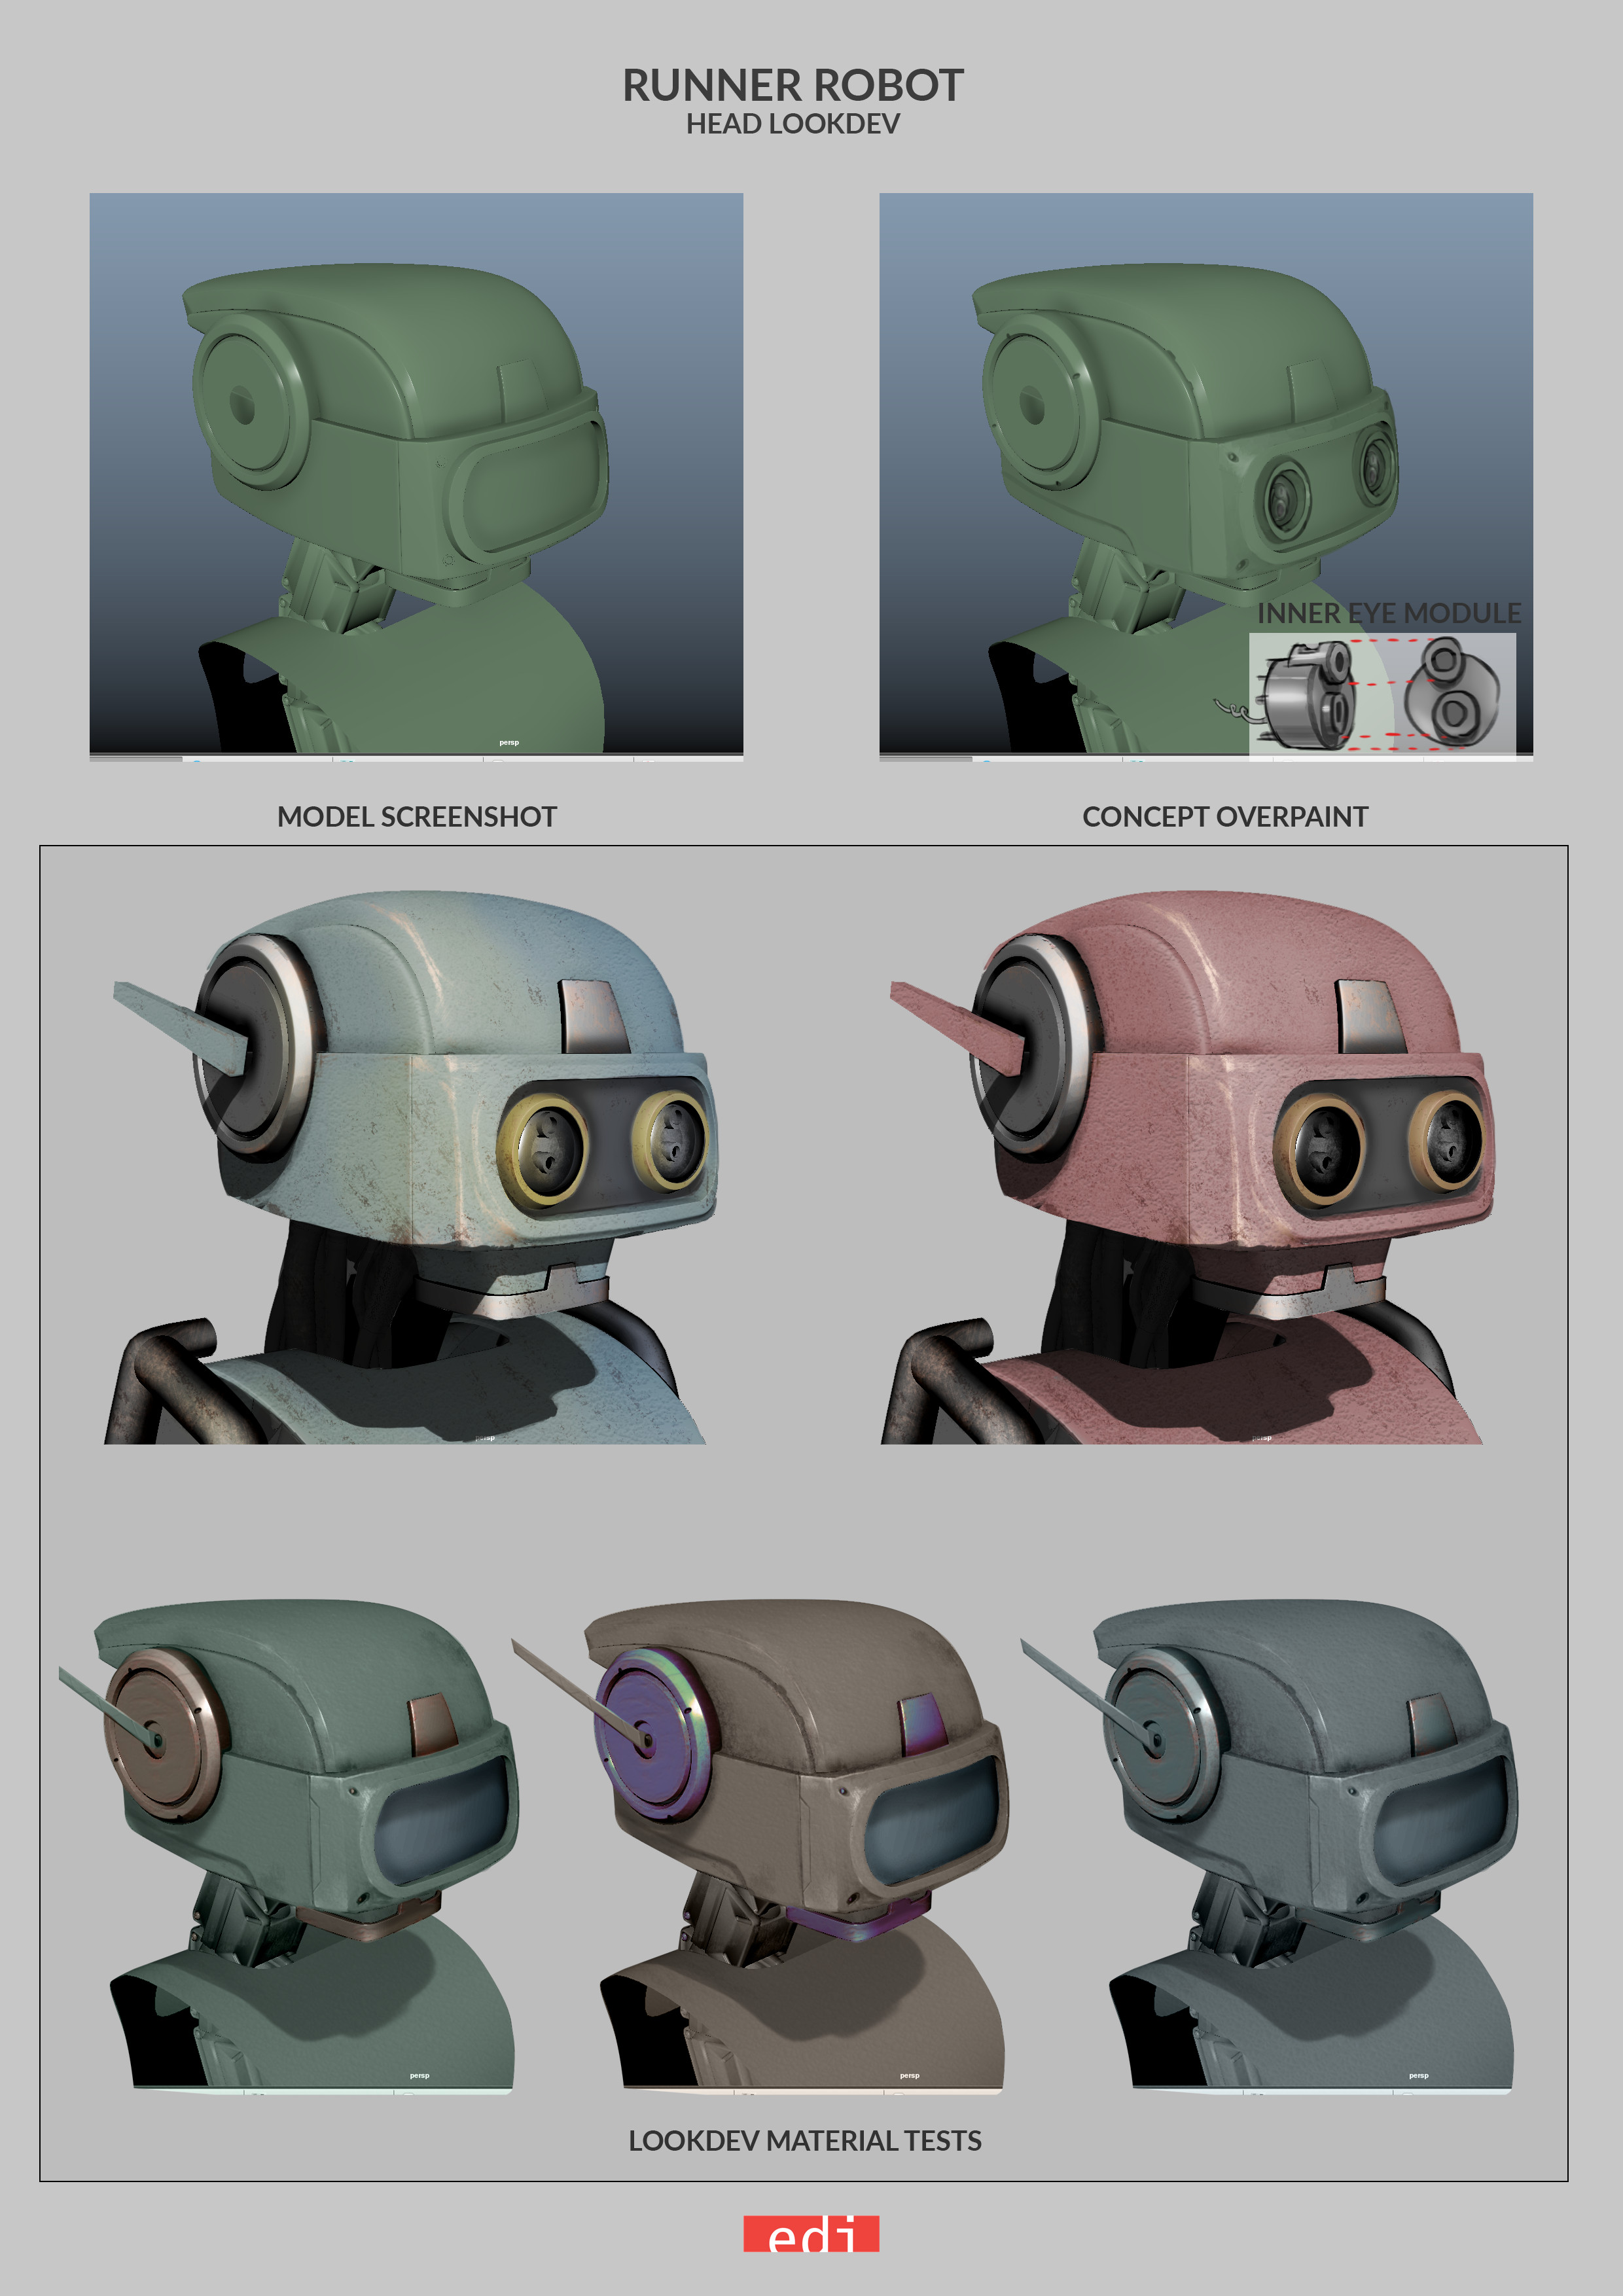 Some advanced concepts of the runner head.